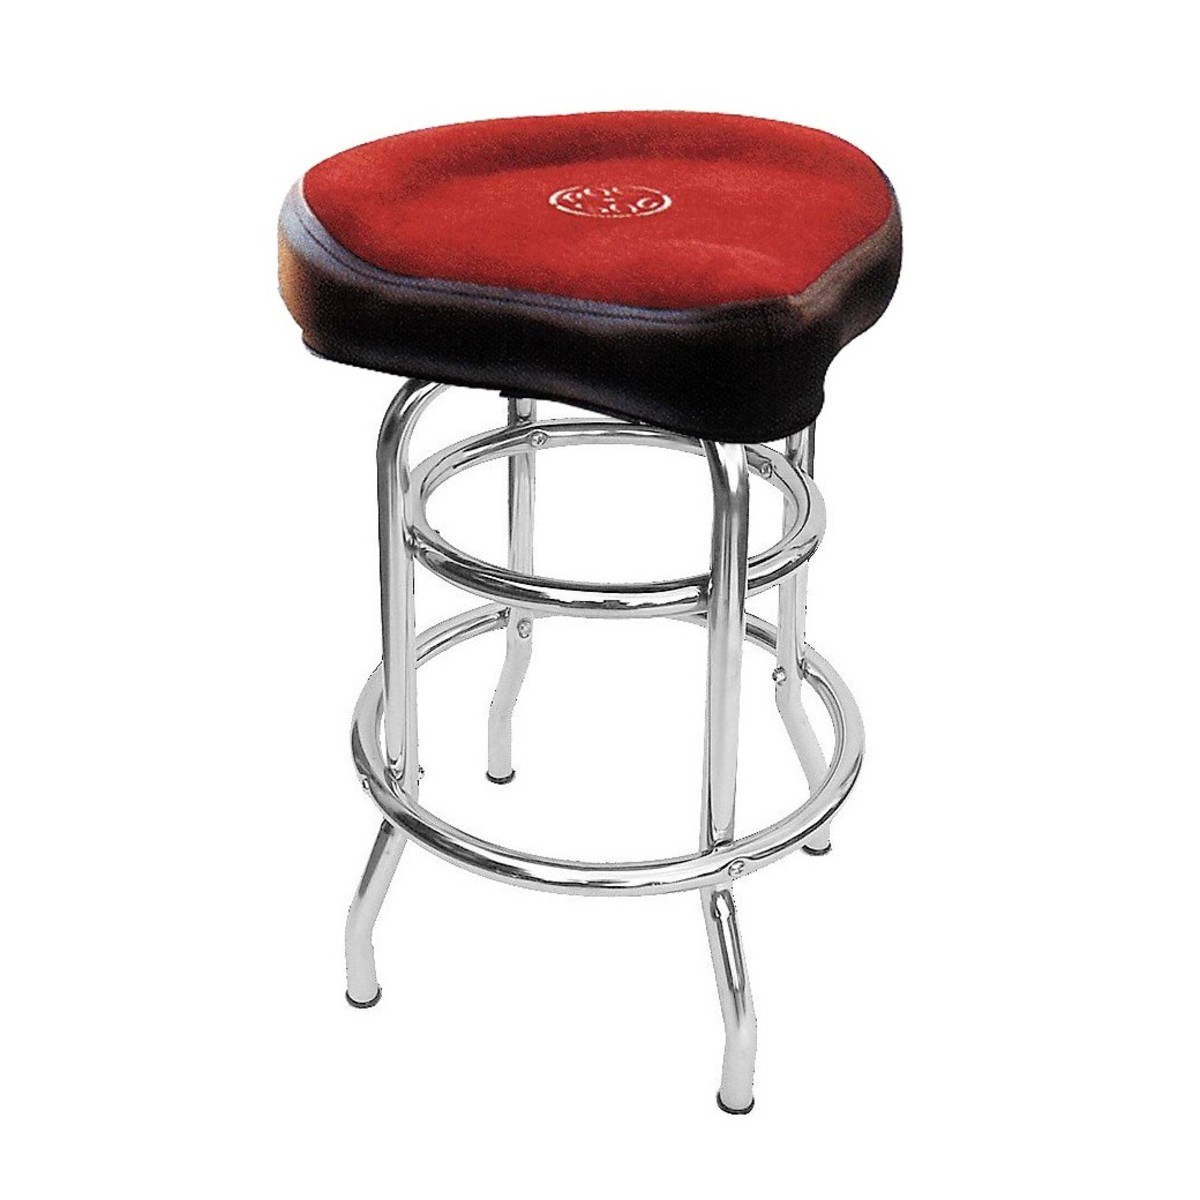 Roc N Soc Tower Stool Short 26 Quot Red At Gear4music Com